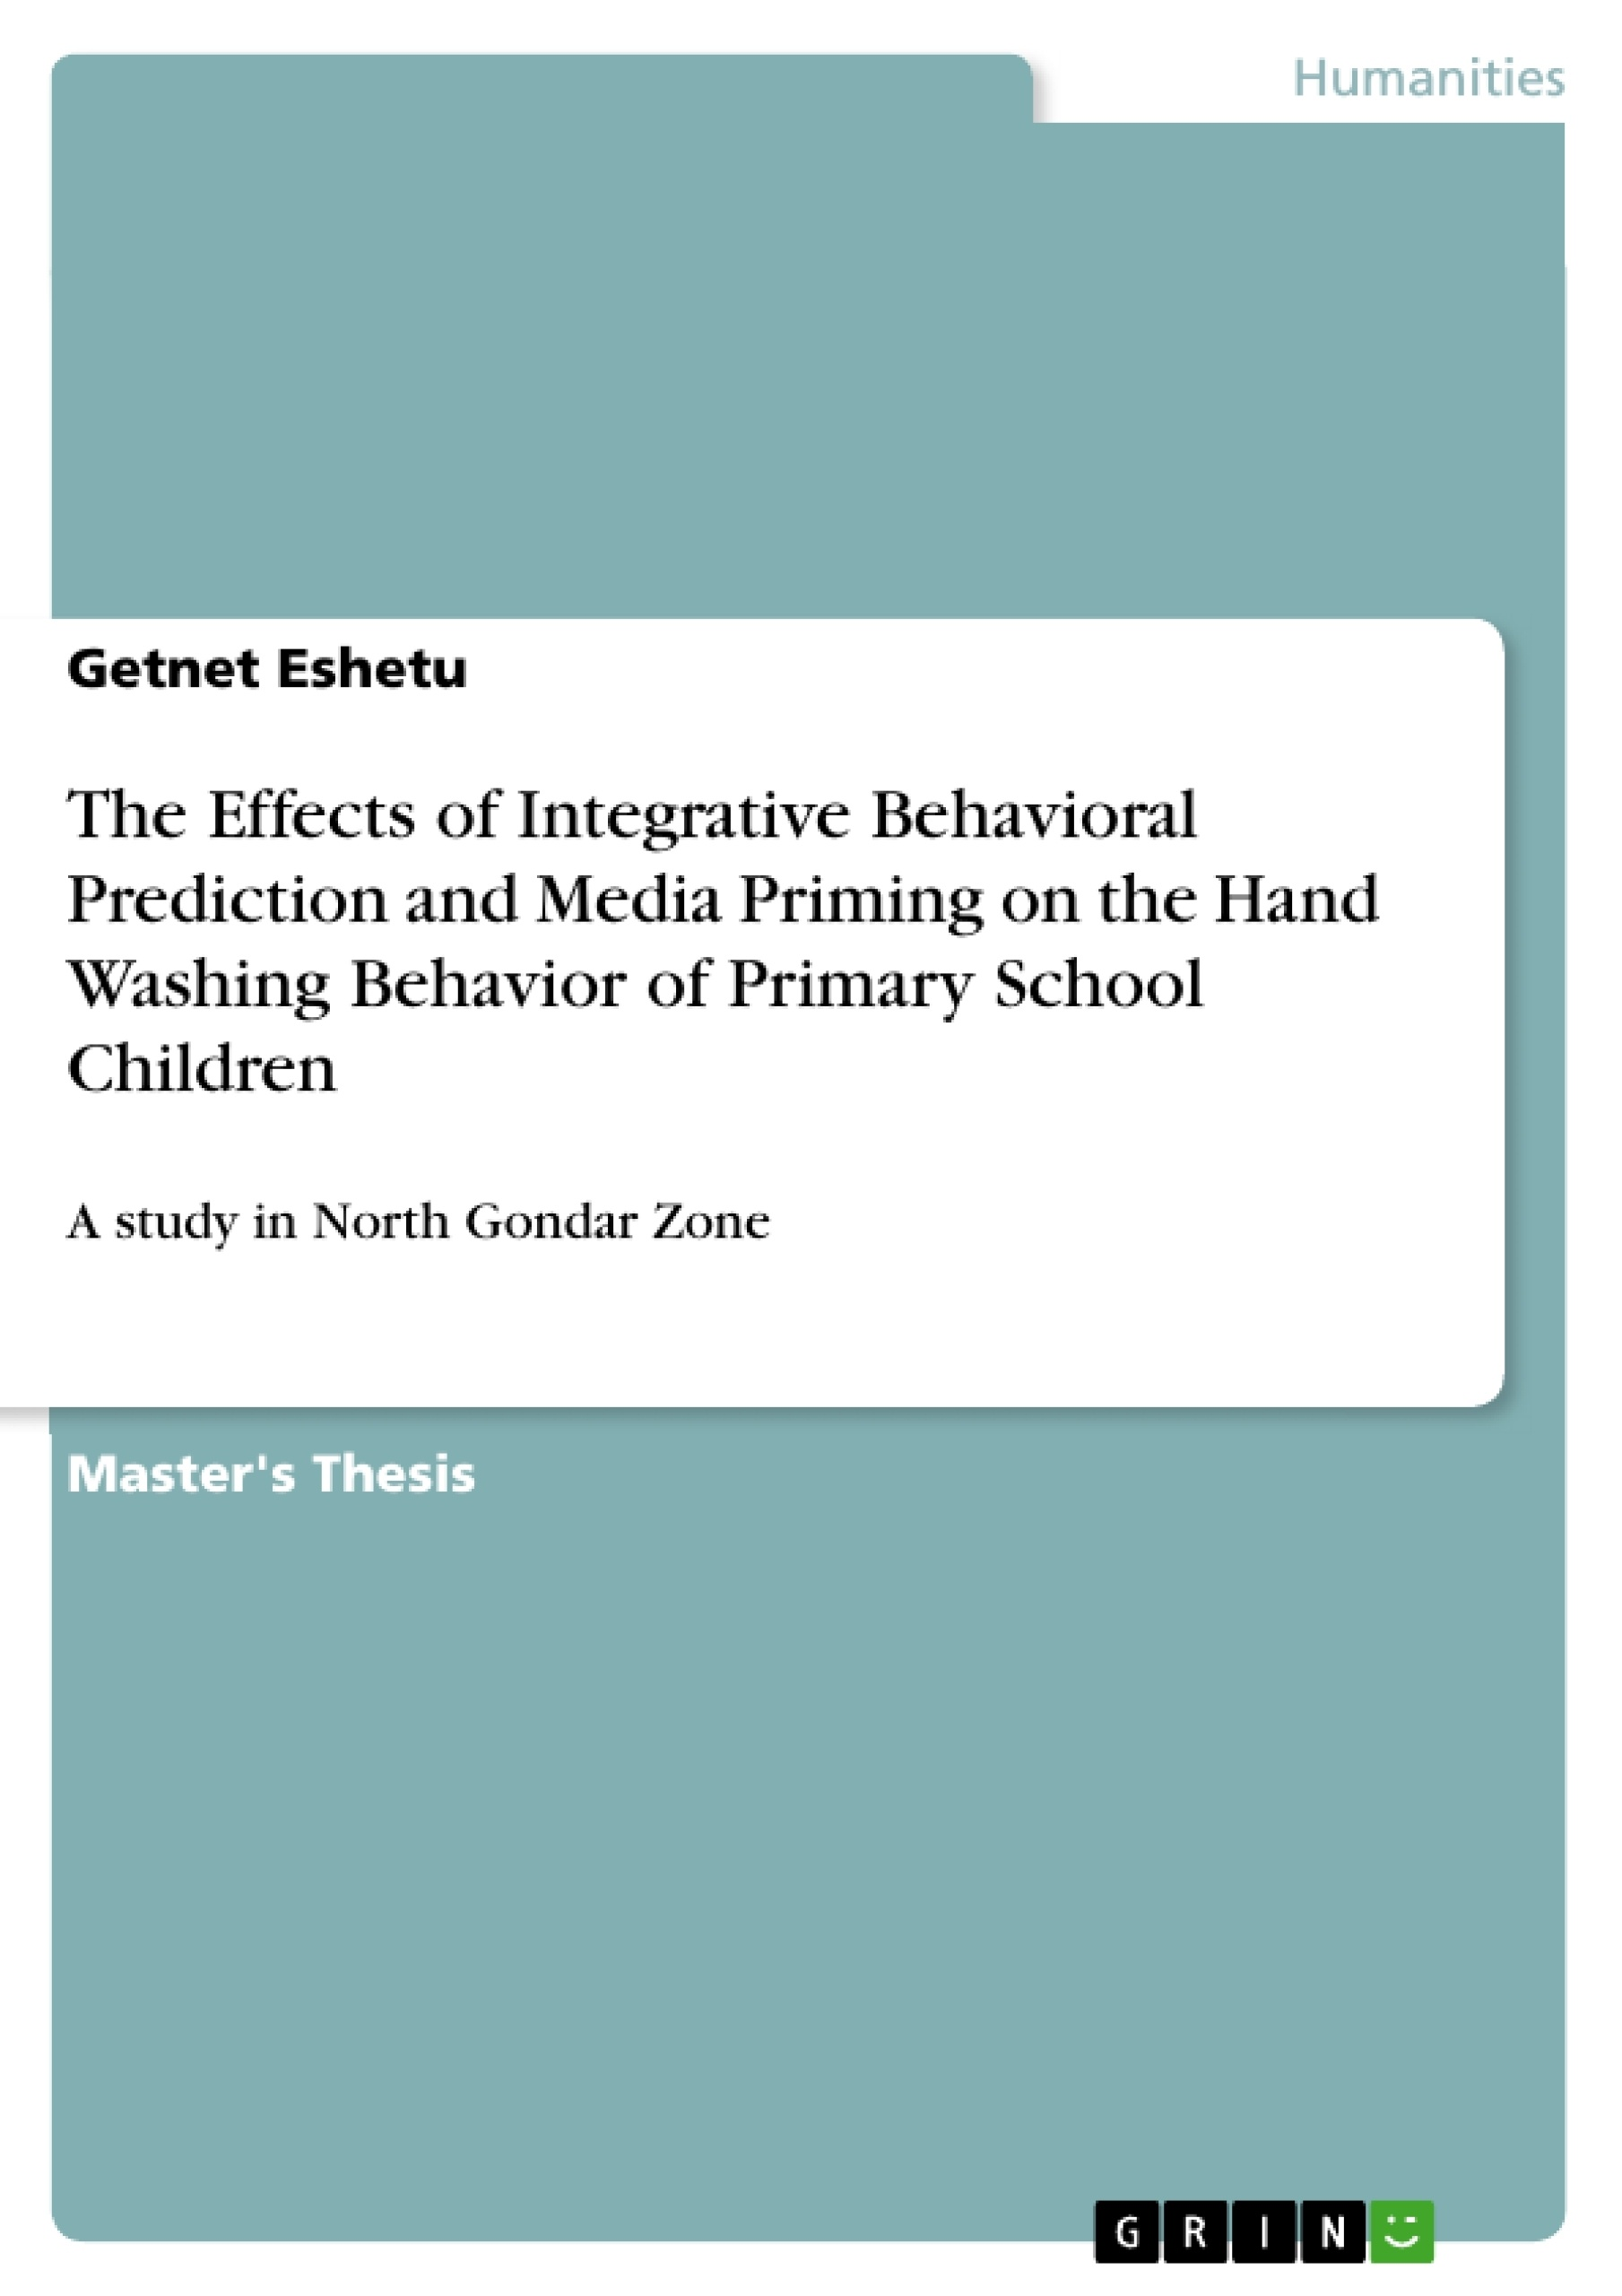 The Effects of Integrative Behavioral Prediction and Media Priming ...